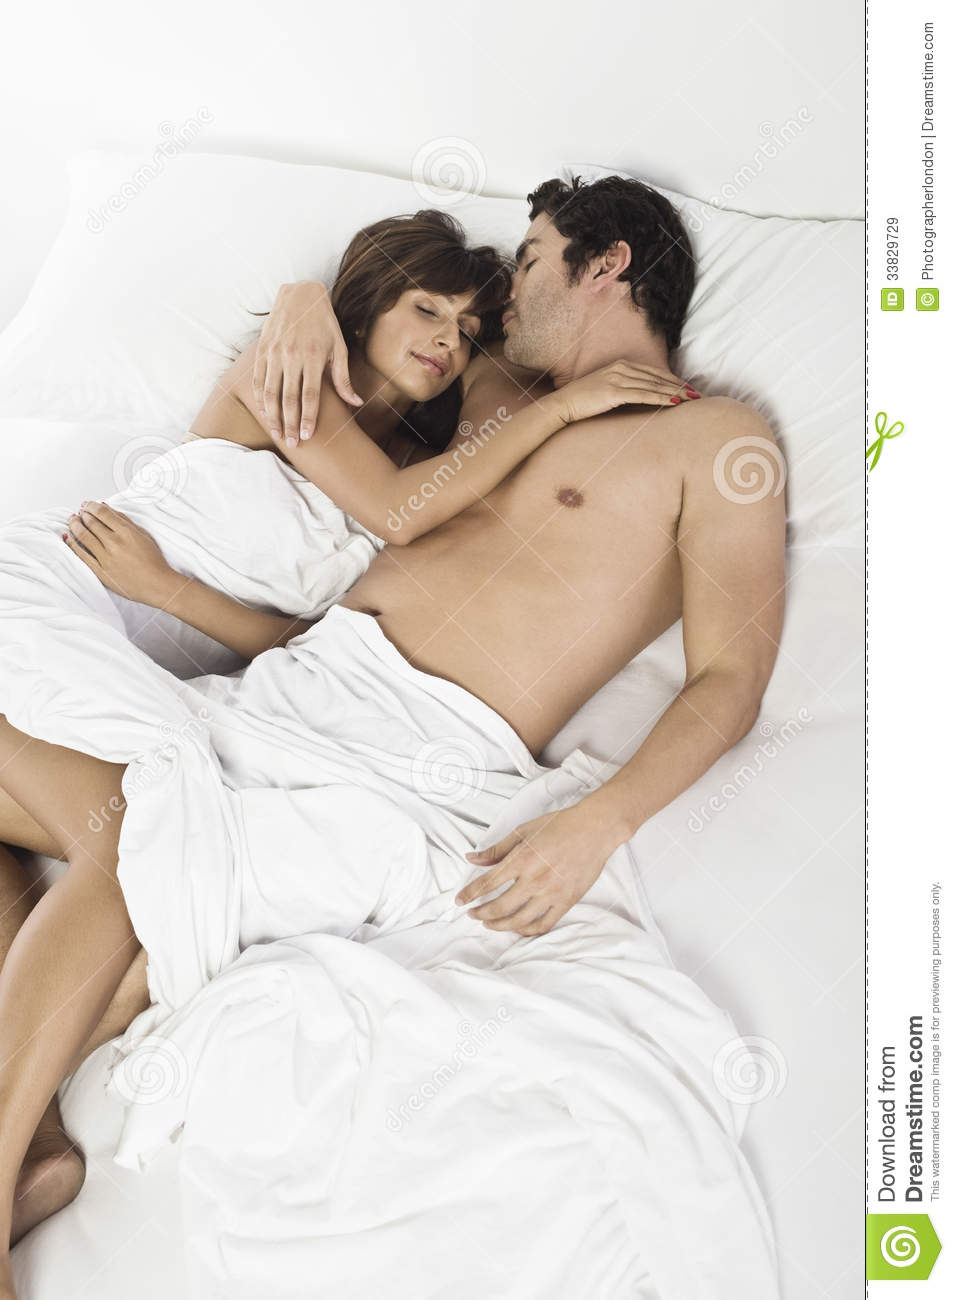 couple bed Young in